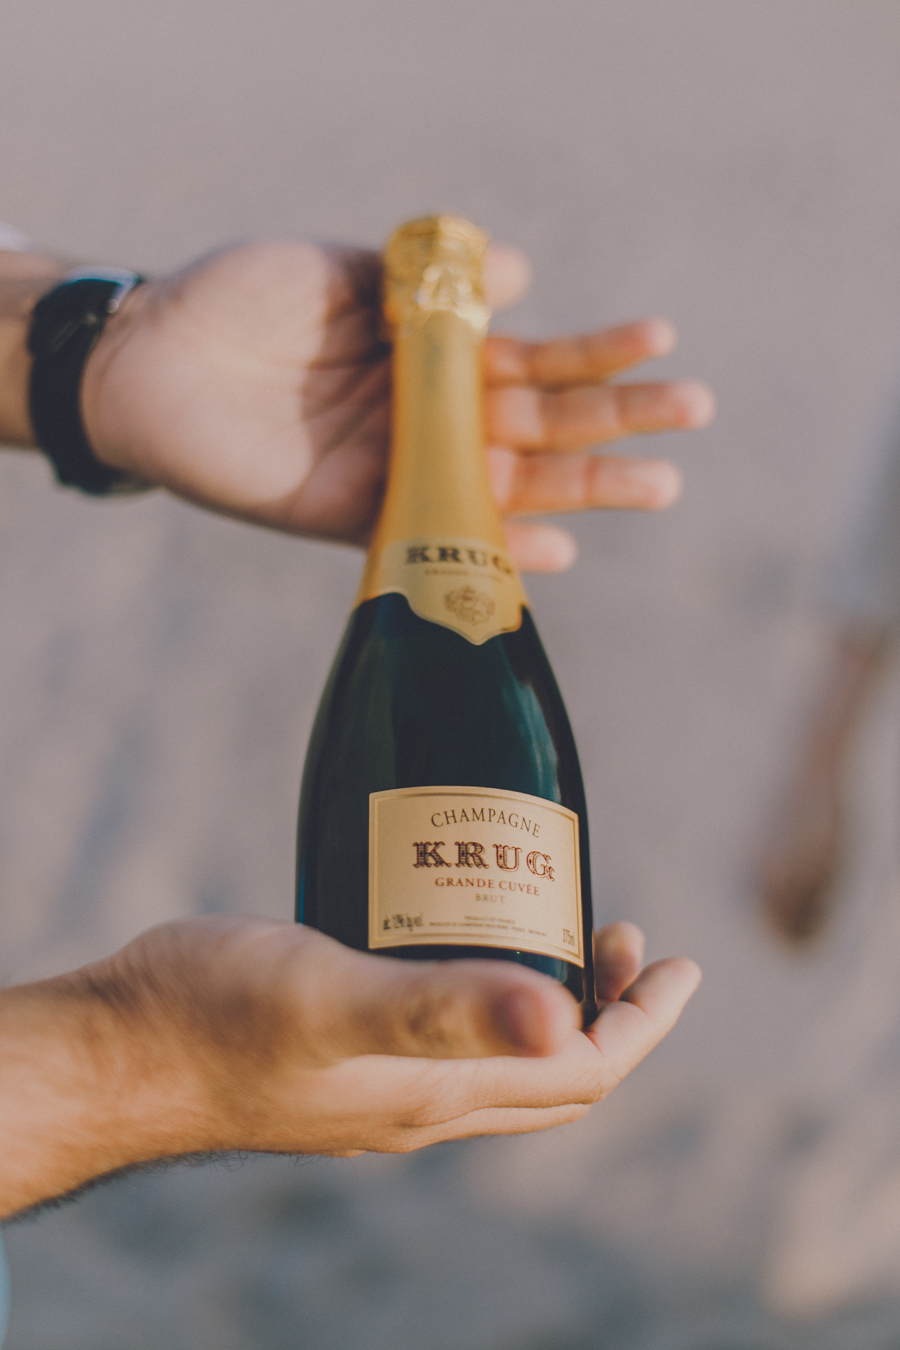 Rachit had this delicious (and adorable 1/2 bottle) of Krug he had been saving for a special occasion...I think this counts!